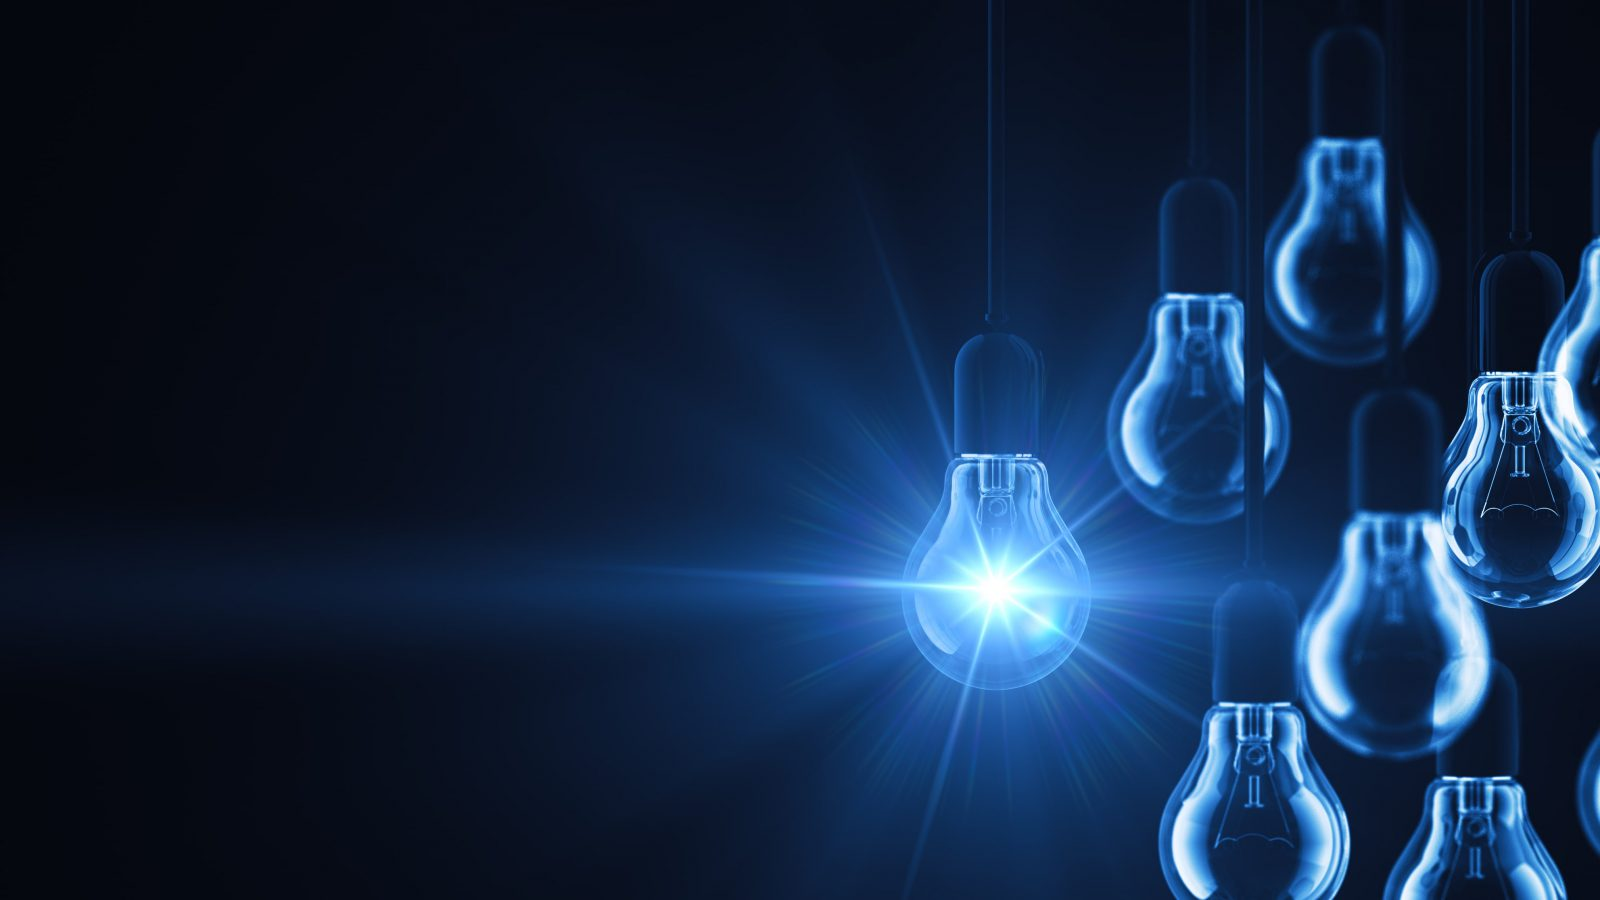 Blue light bulbs with one turned on